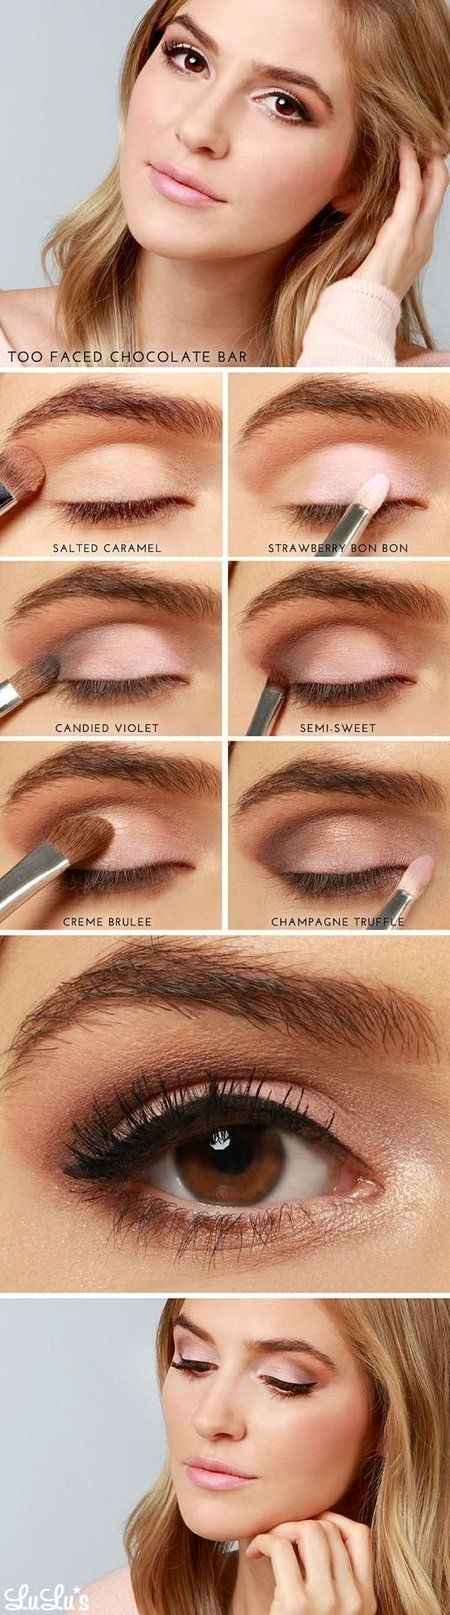 I really like this eye tutorial it's perfect for every day! http://angelsstyle.tumblr.com/post/80289457364